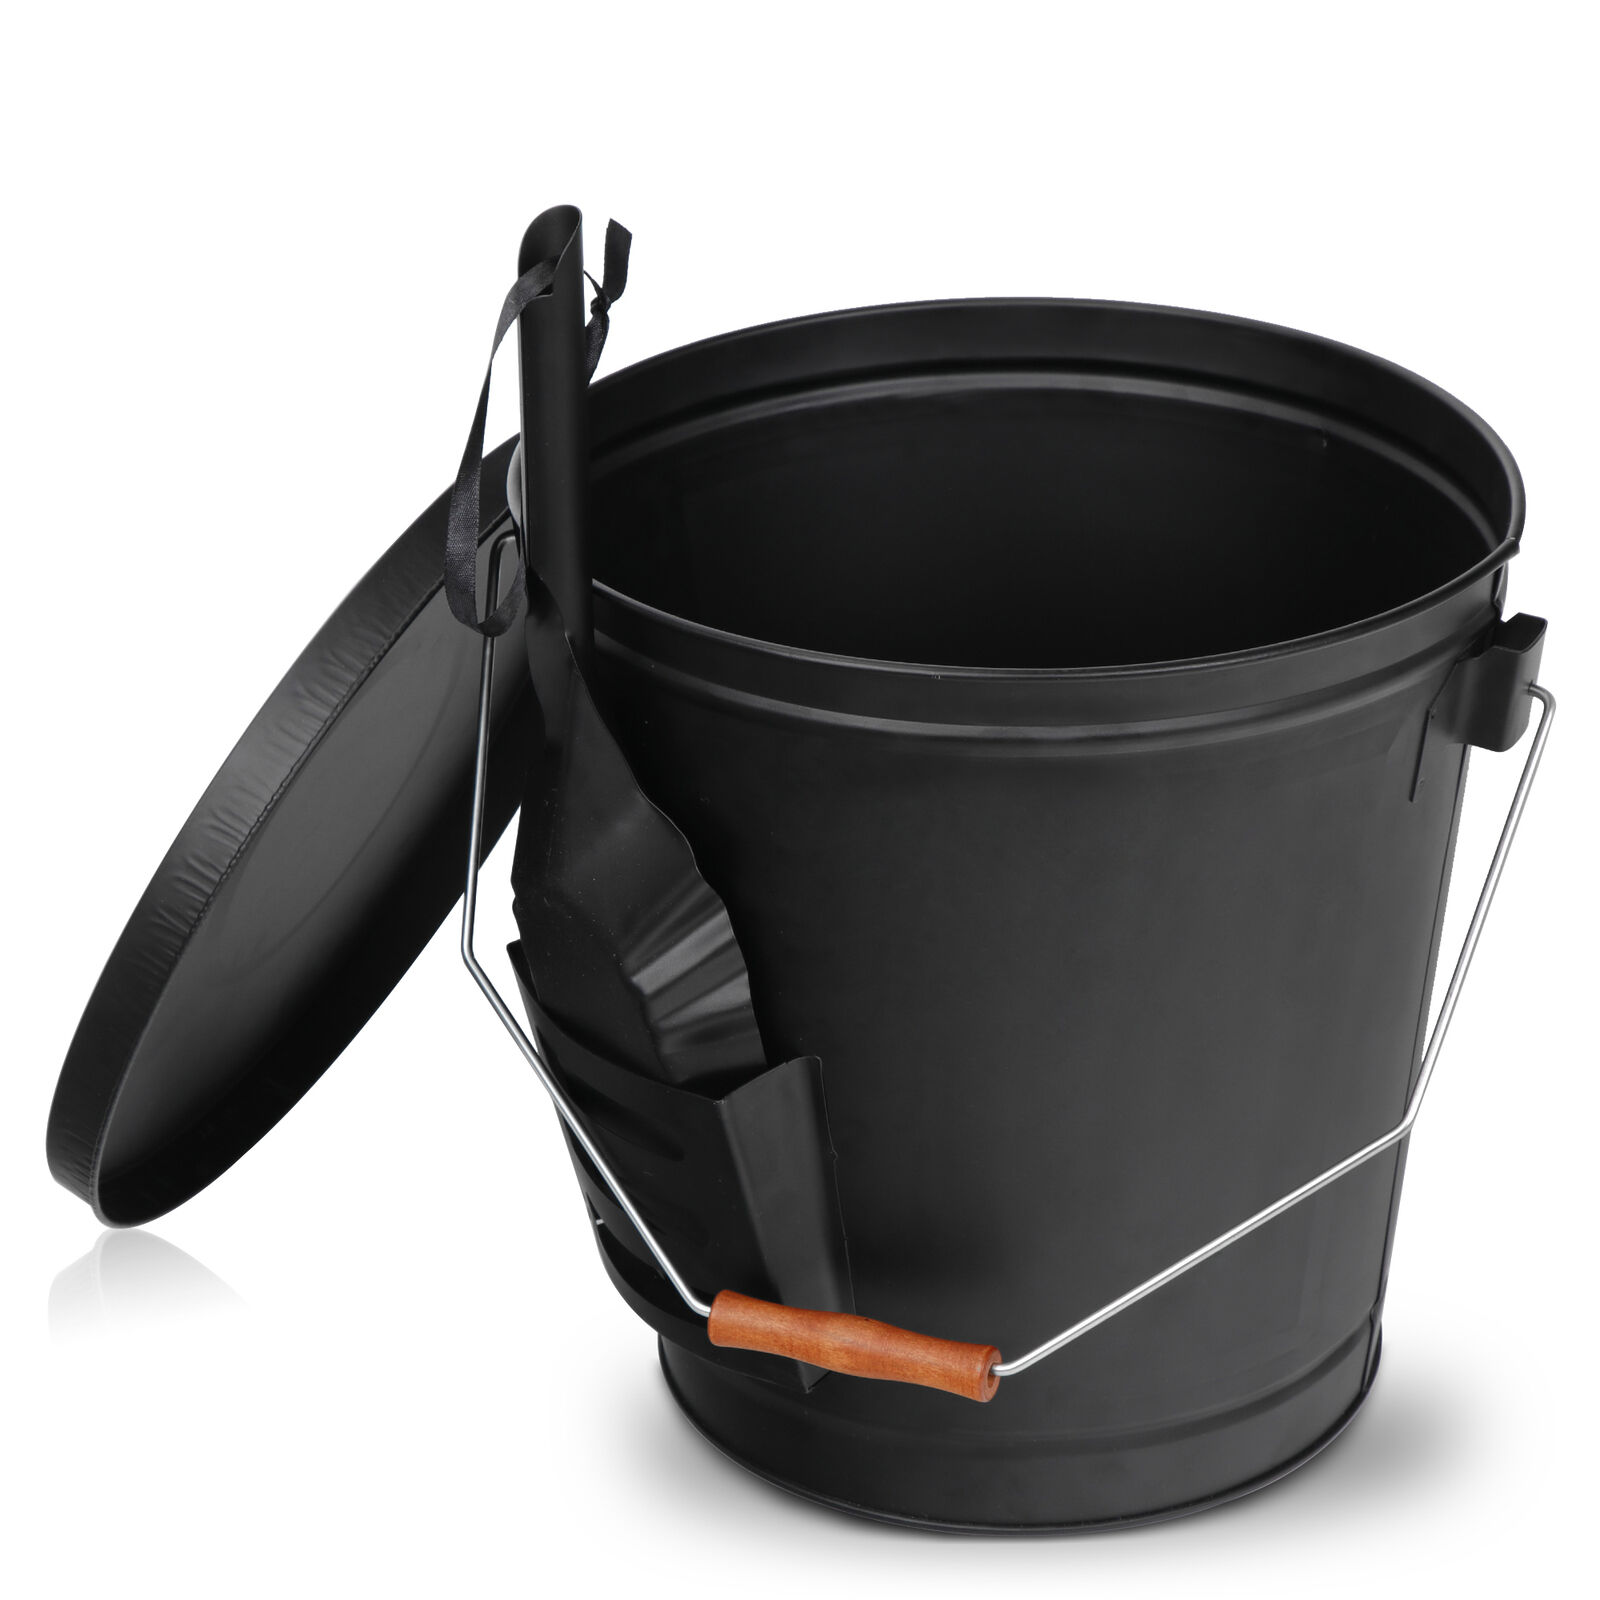 Black Metal Fireplace Ash Bucket With Shovel Lid Cover Fire Pits Stove Sturdy Fireplaces & Stoves